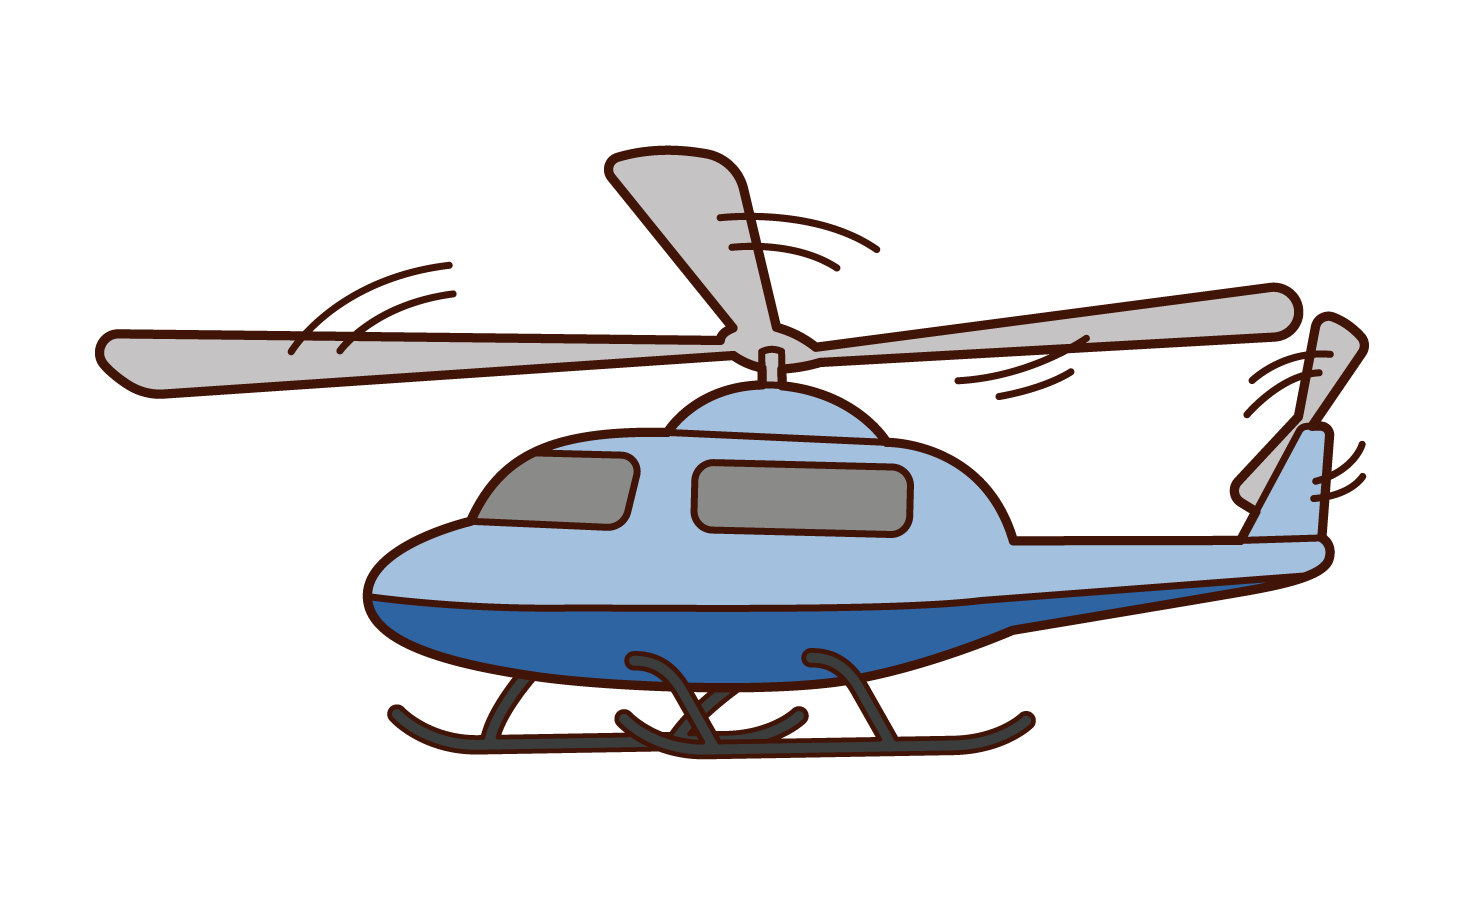 Helicopter Illustrations